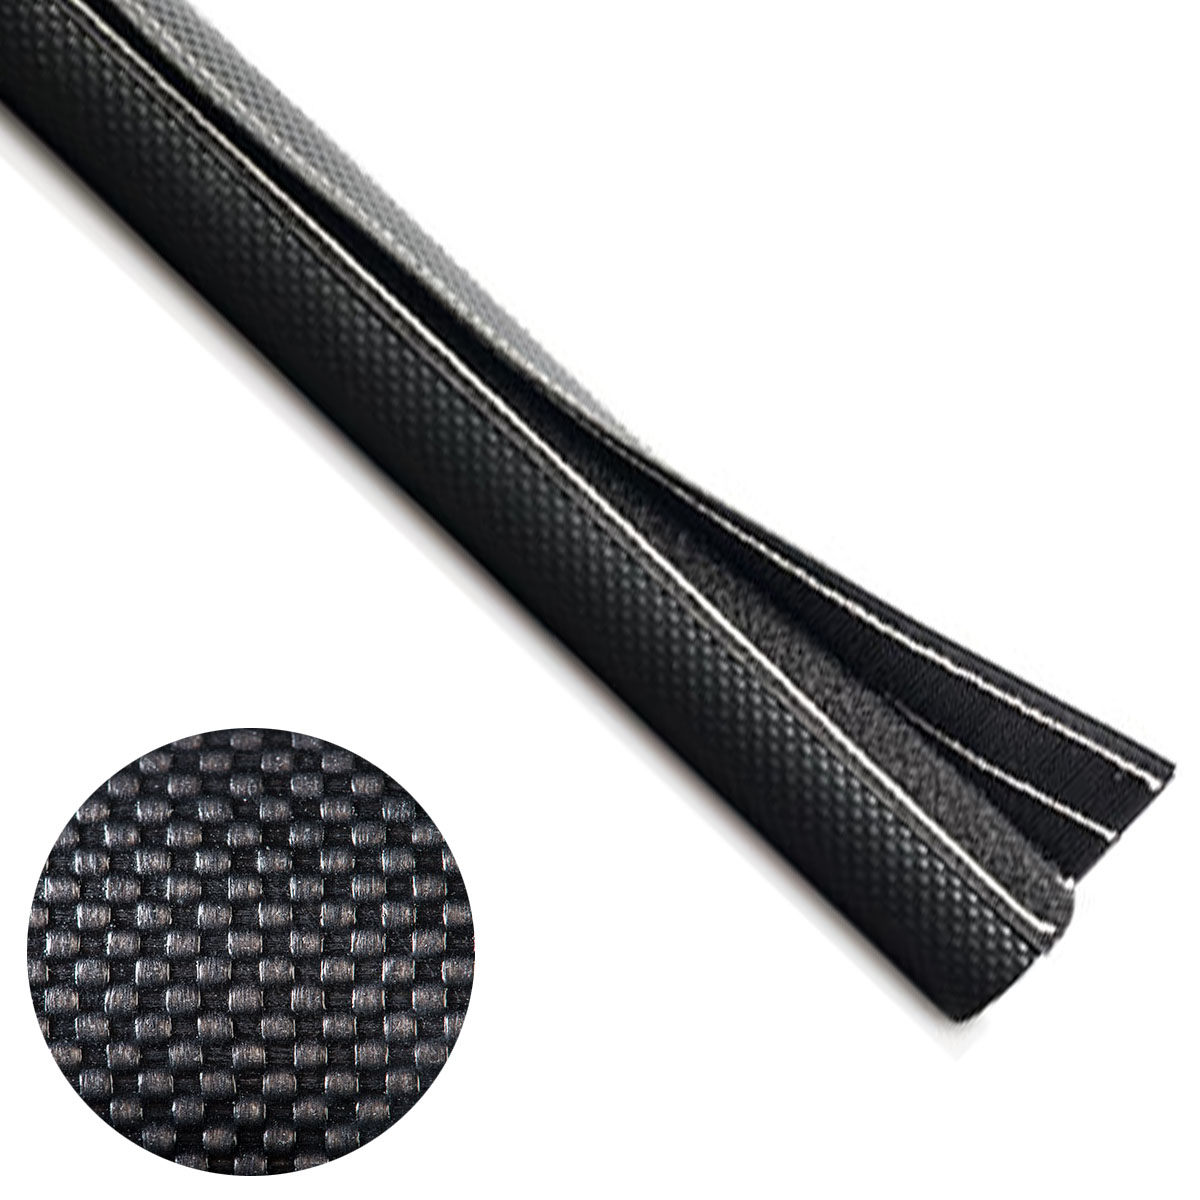 Gator Wrap Extreme Heavy Duty Abrasion Sleeving | Sizes from 1.375 ...